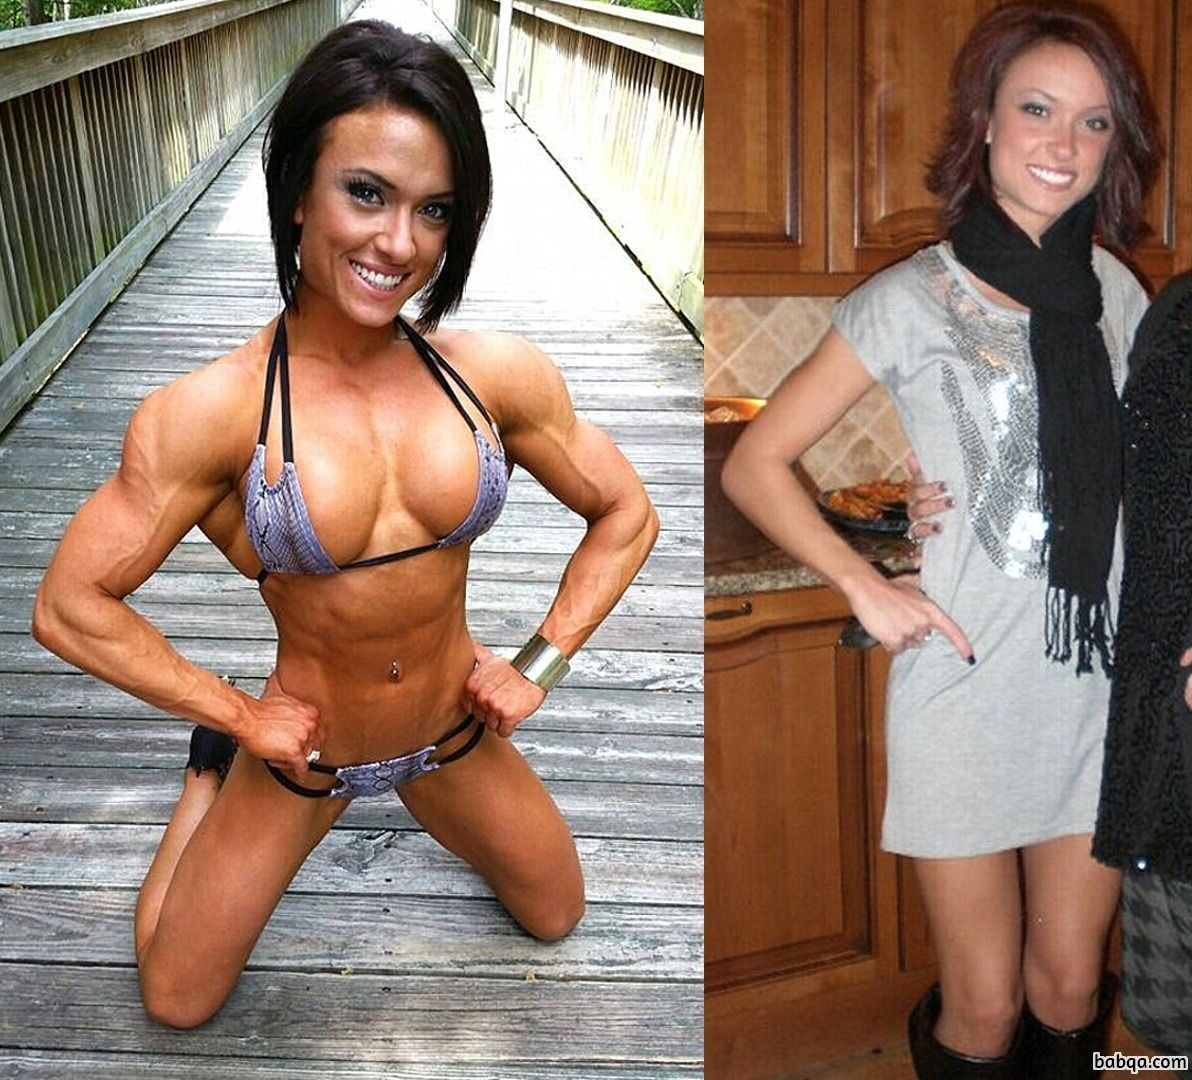 spicy girl with strong body and toned legs picture from facebook